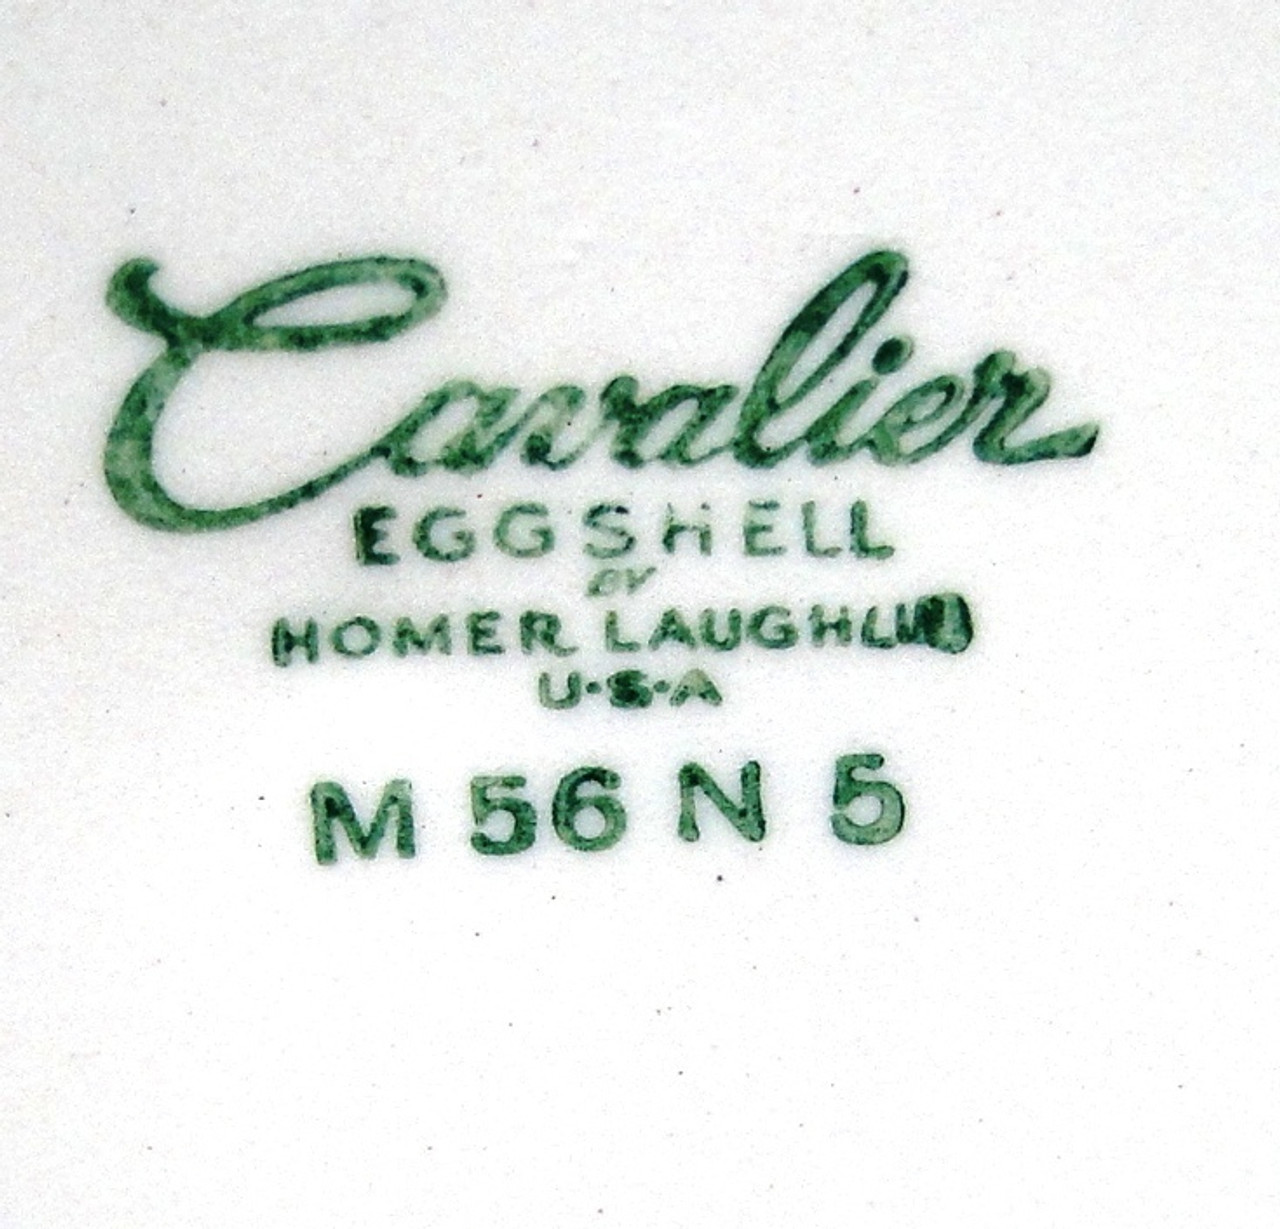 Homer Laughlin Eggshell Cavalier